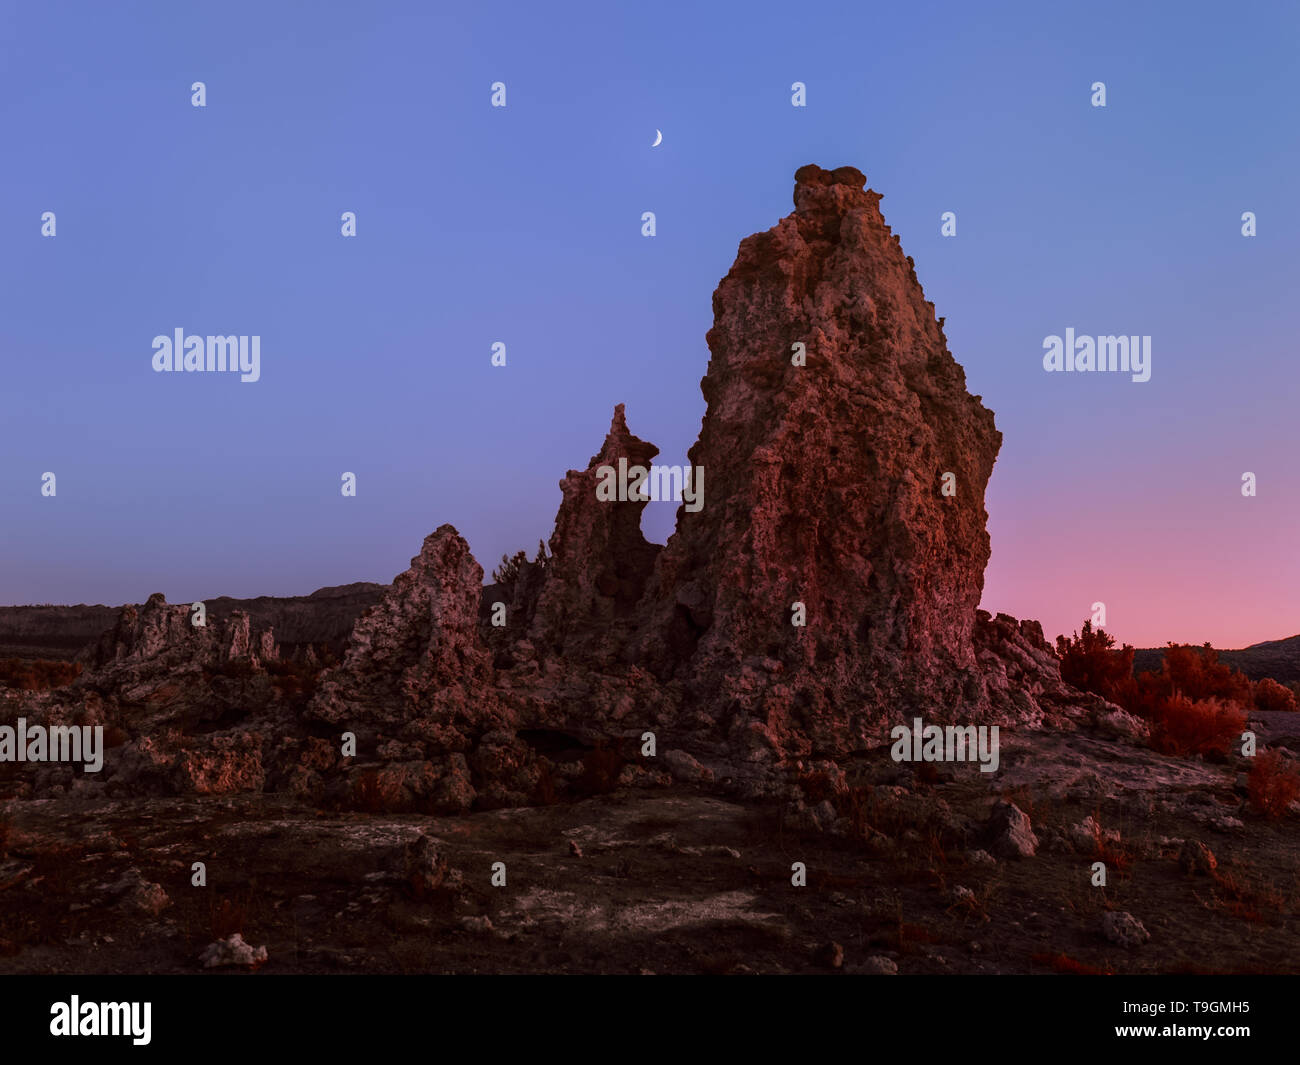 Unearthly scenery with bizarre rock formations and crescent moon - Stock Image